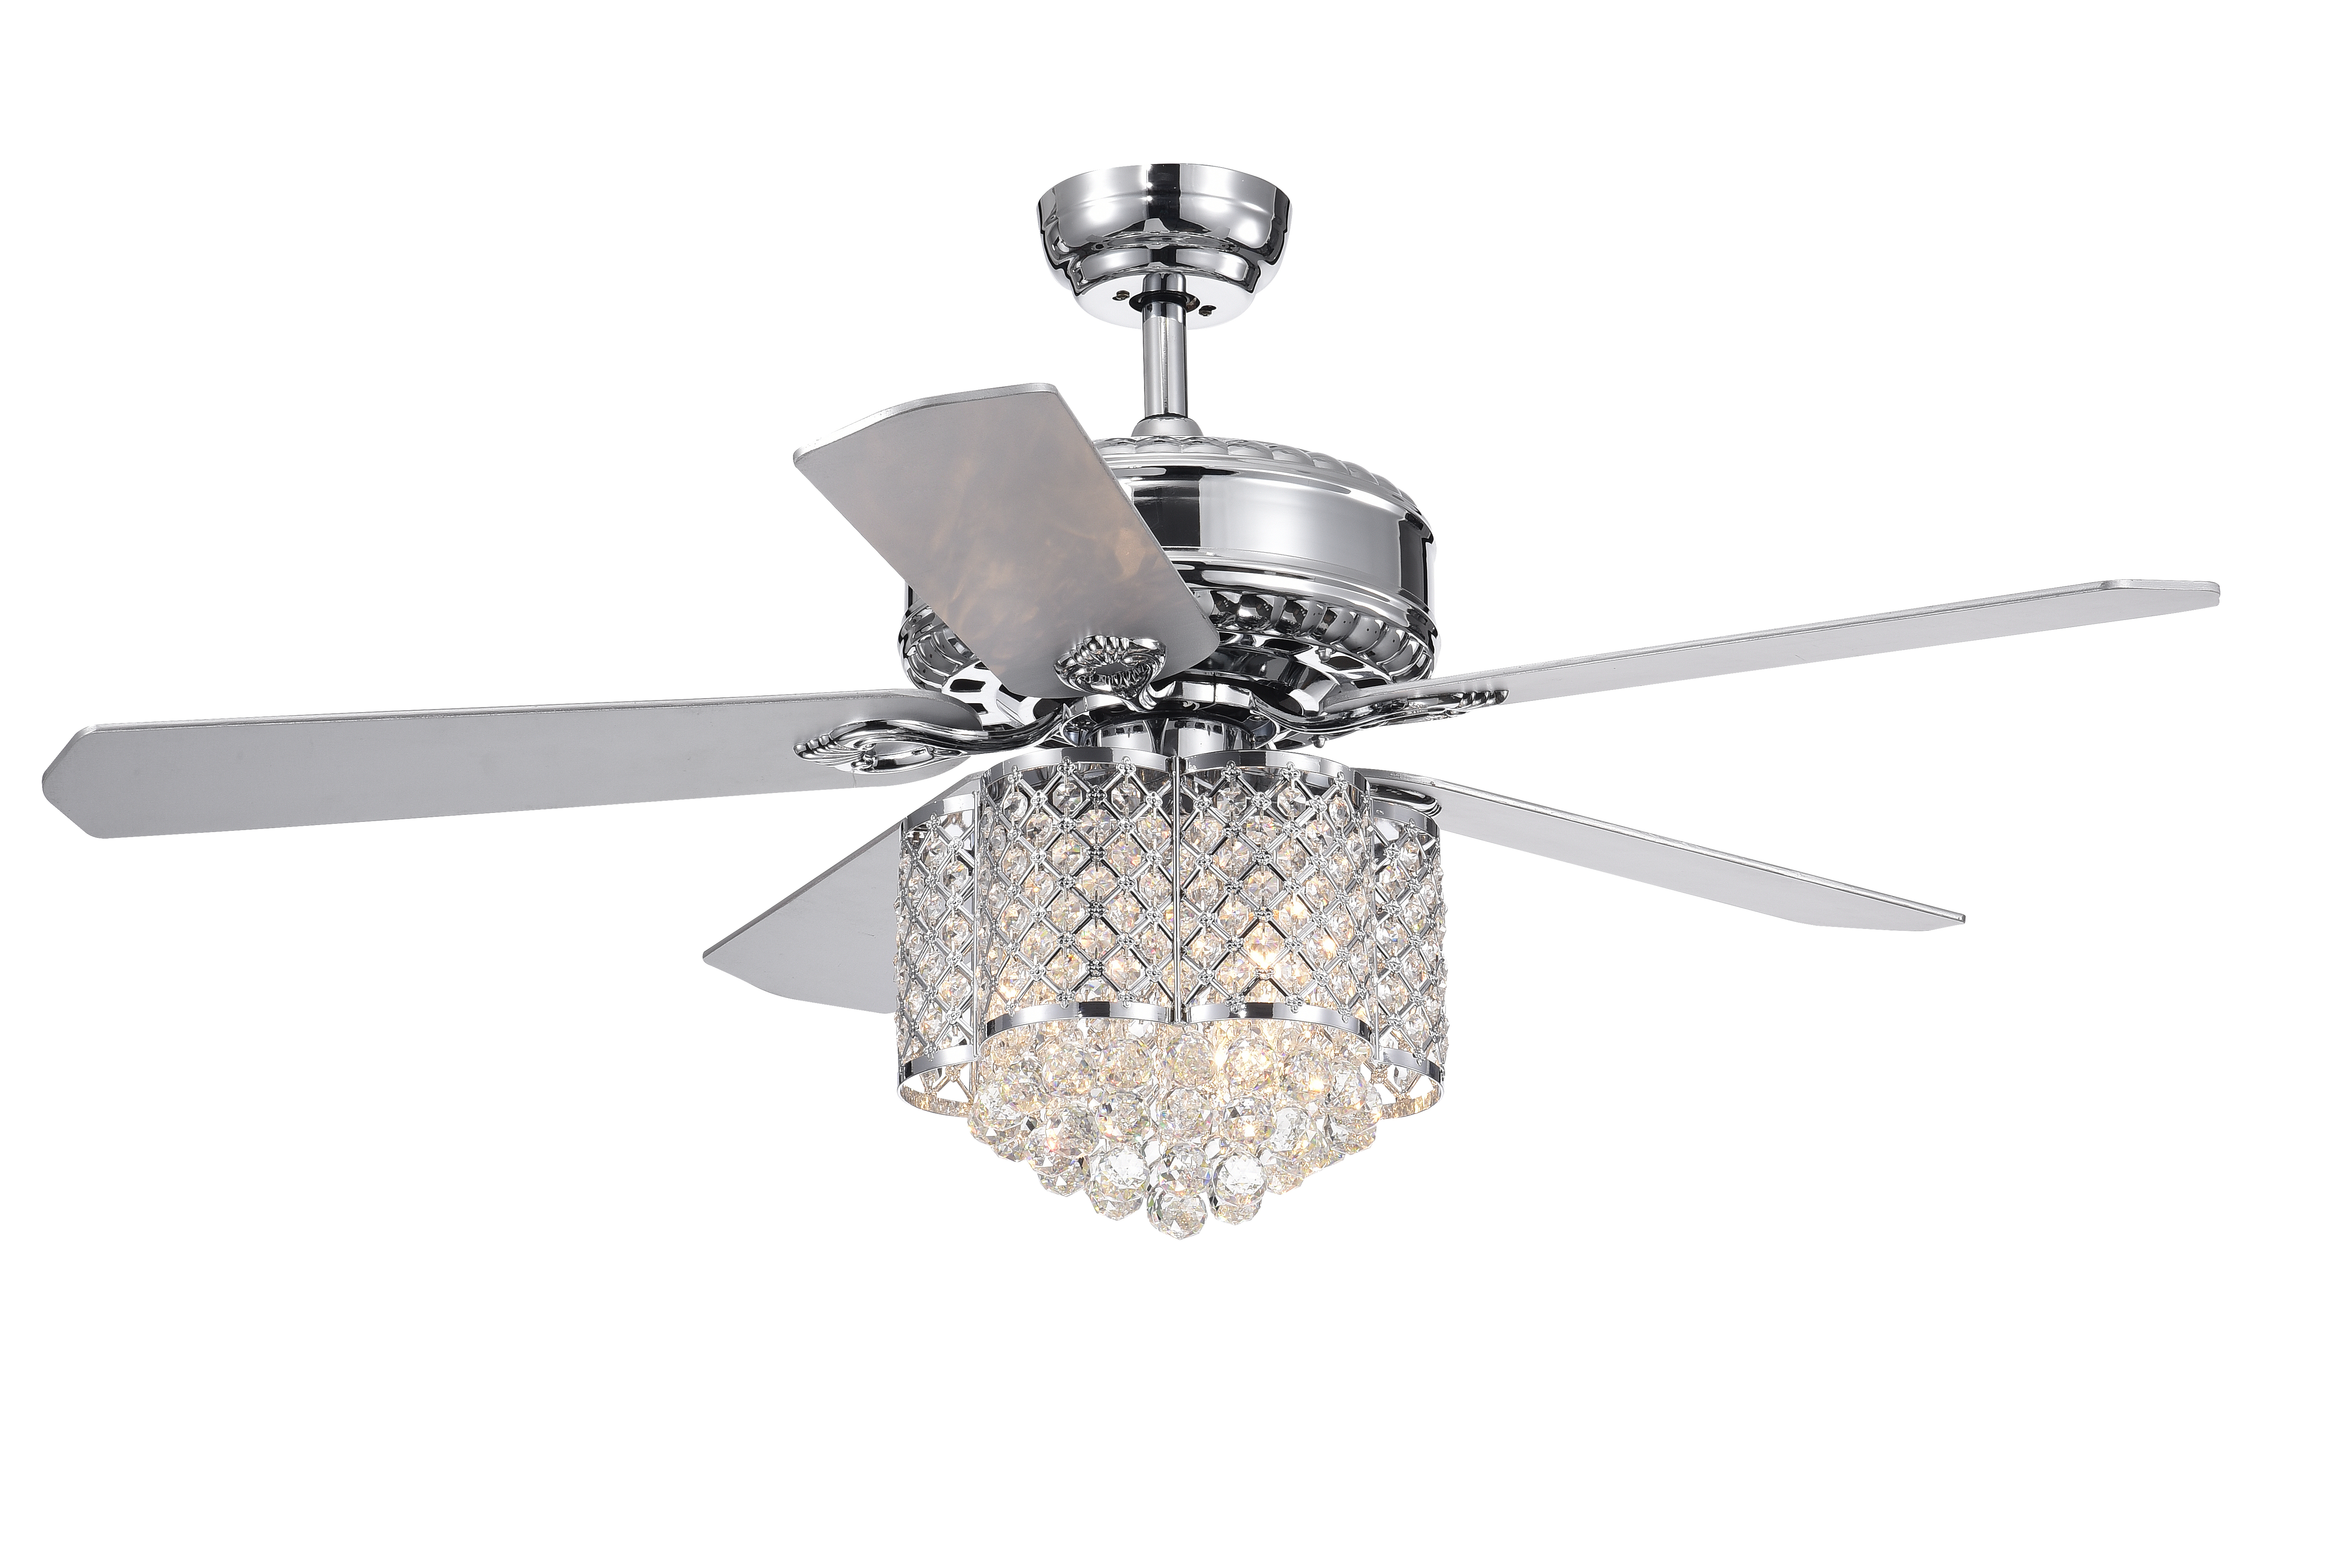 Famous 5 Blade Ceiling Fans With Remote Pertaining To Deidor 5 Blade 52 Inch Chrome Ceiling Fan With 3 Light Crystal Chandelier  (Remote Controlled) (View 12 of 20)